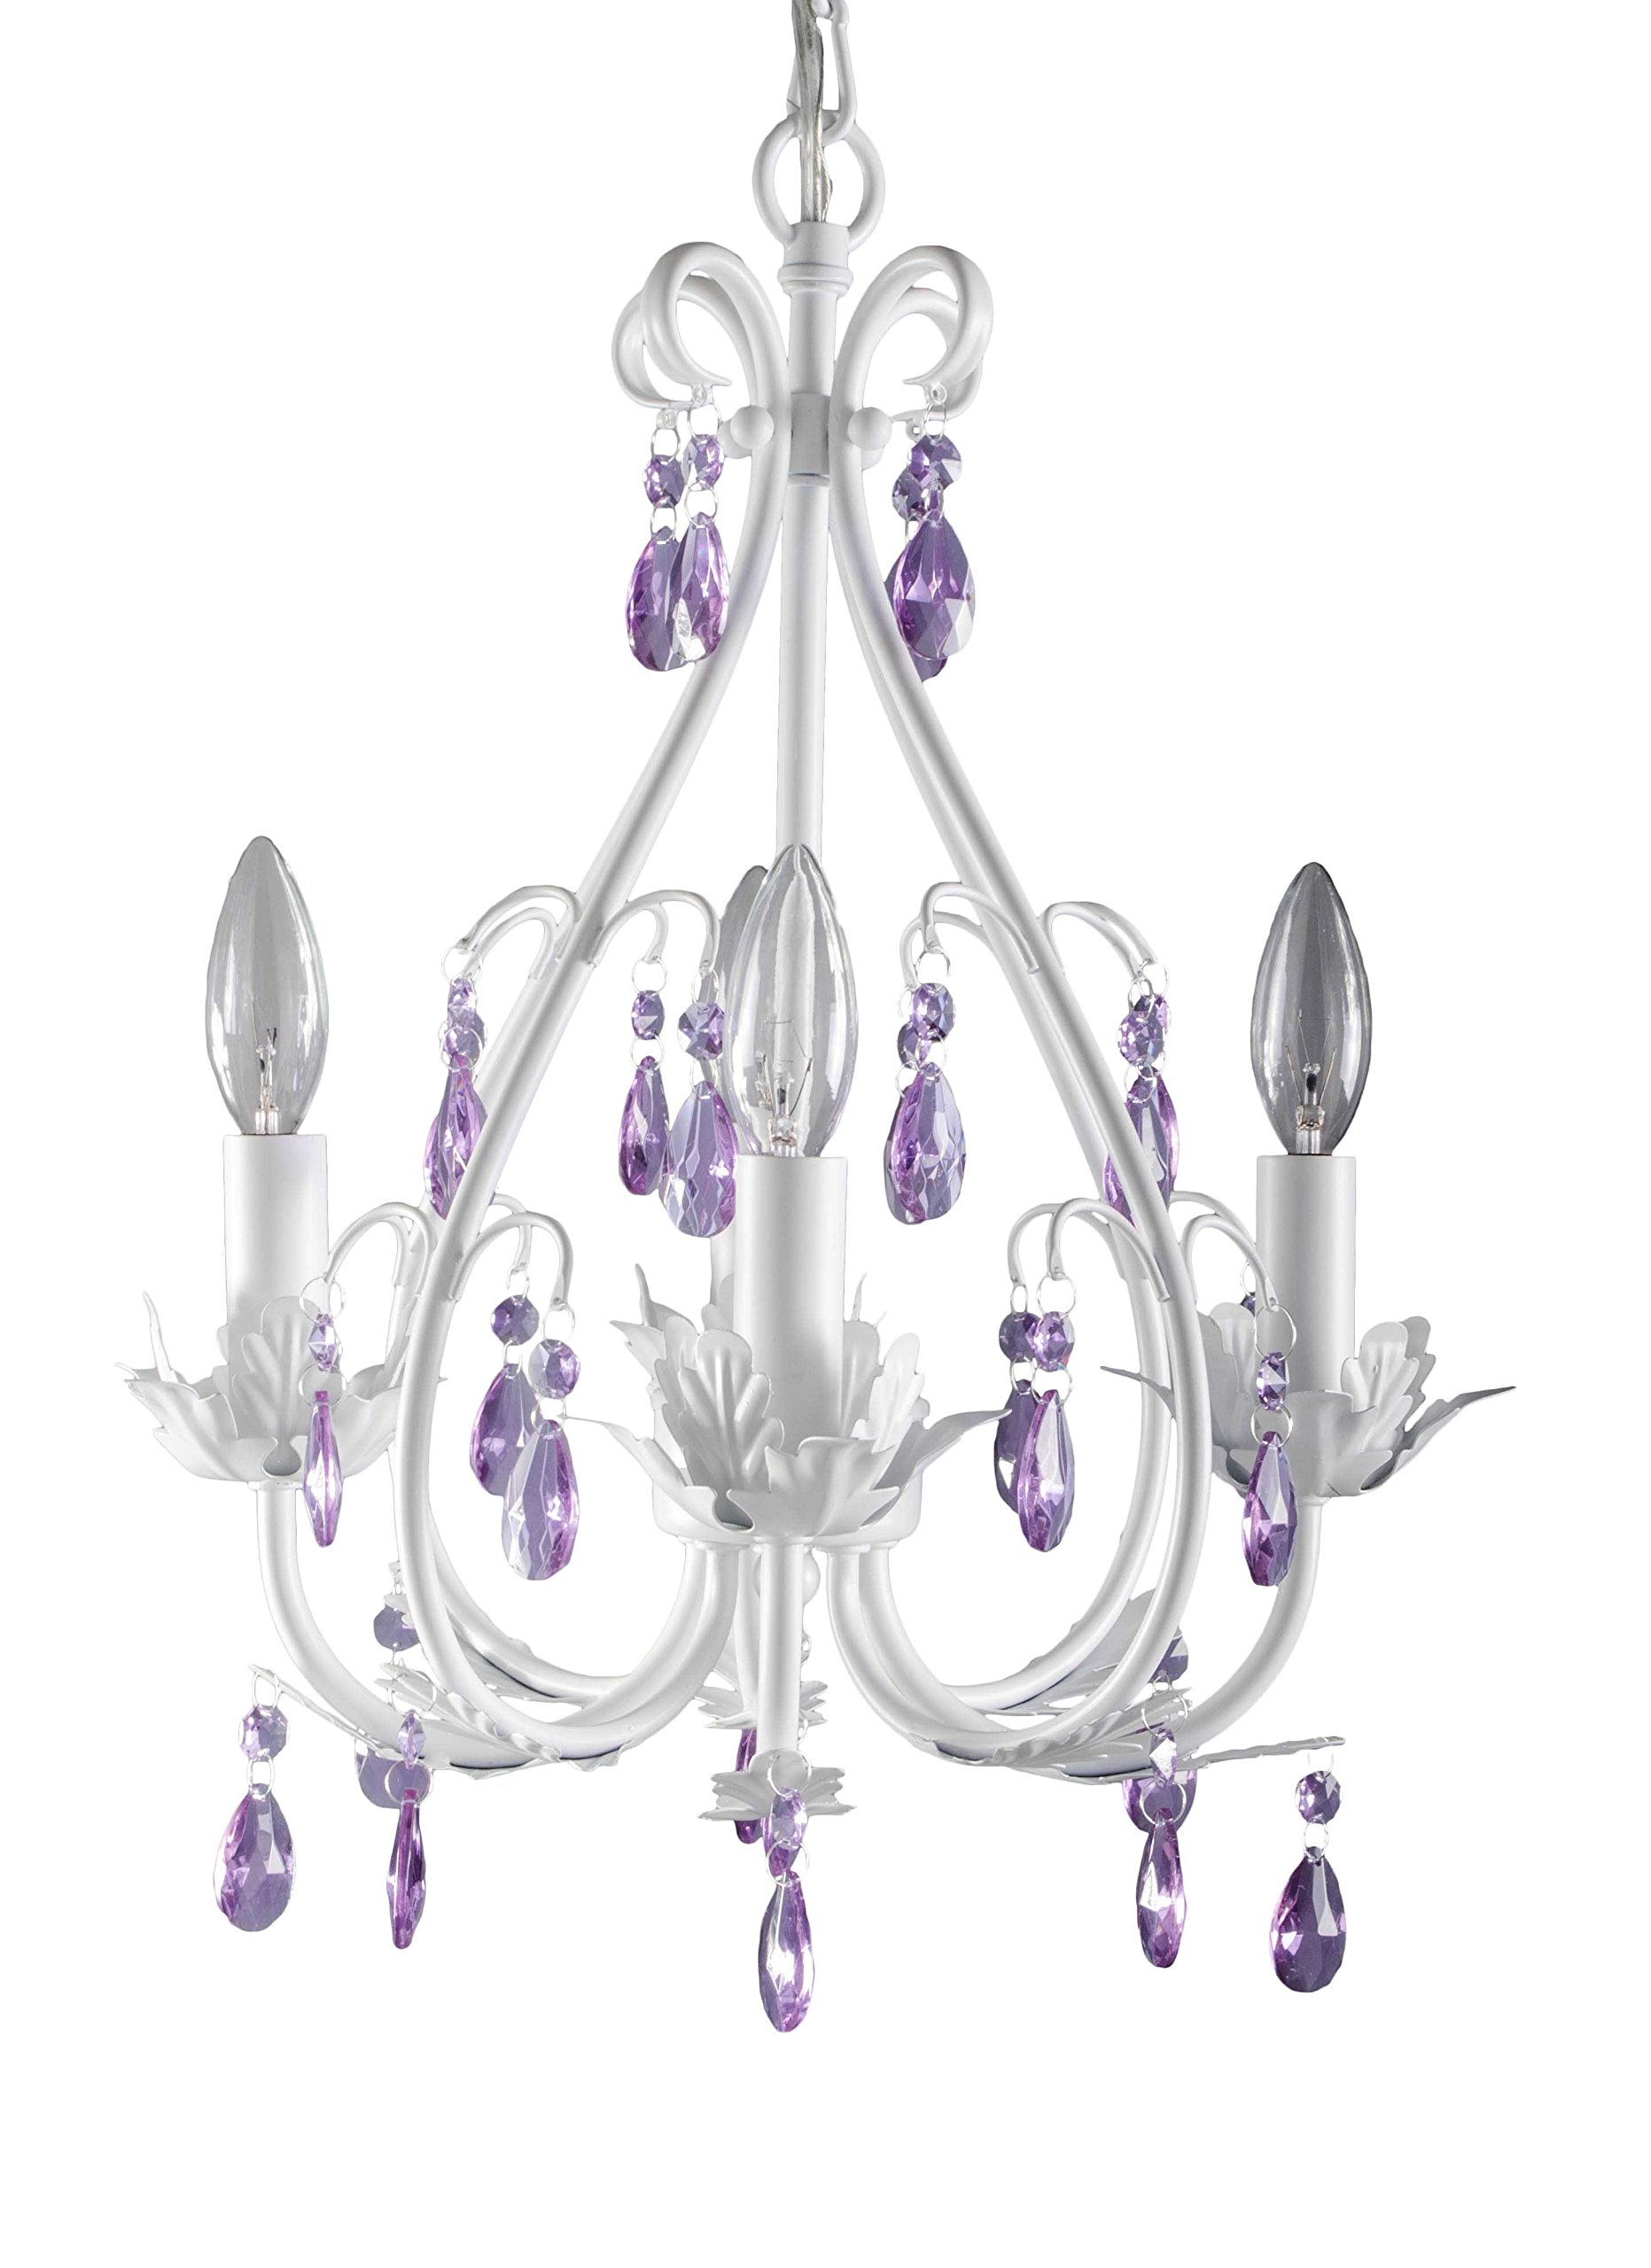 Firefly Kids Lighting - Sophia 4 Arm Crystal Chandelier, Purple Crystals, 4-Light E12 60W each (not included), Hand-Wrought Iron, Authentic Crystals, Dimmable